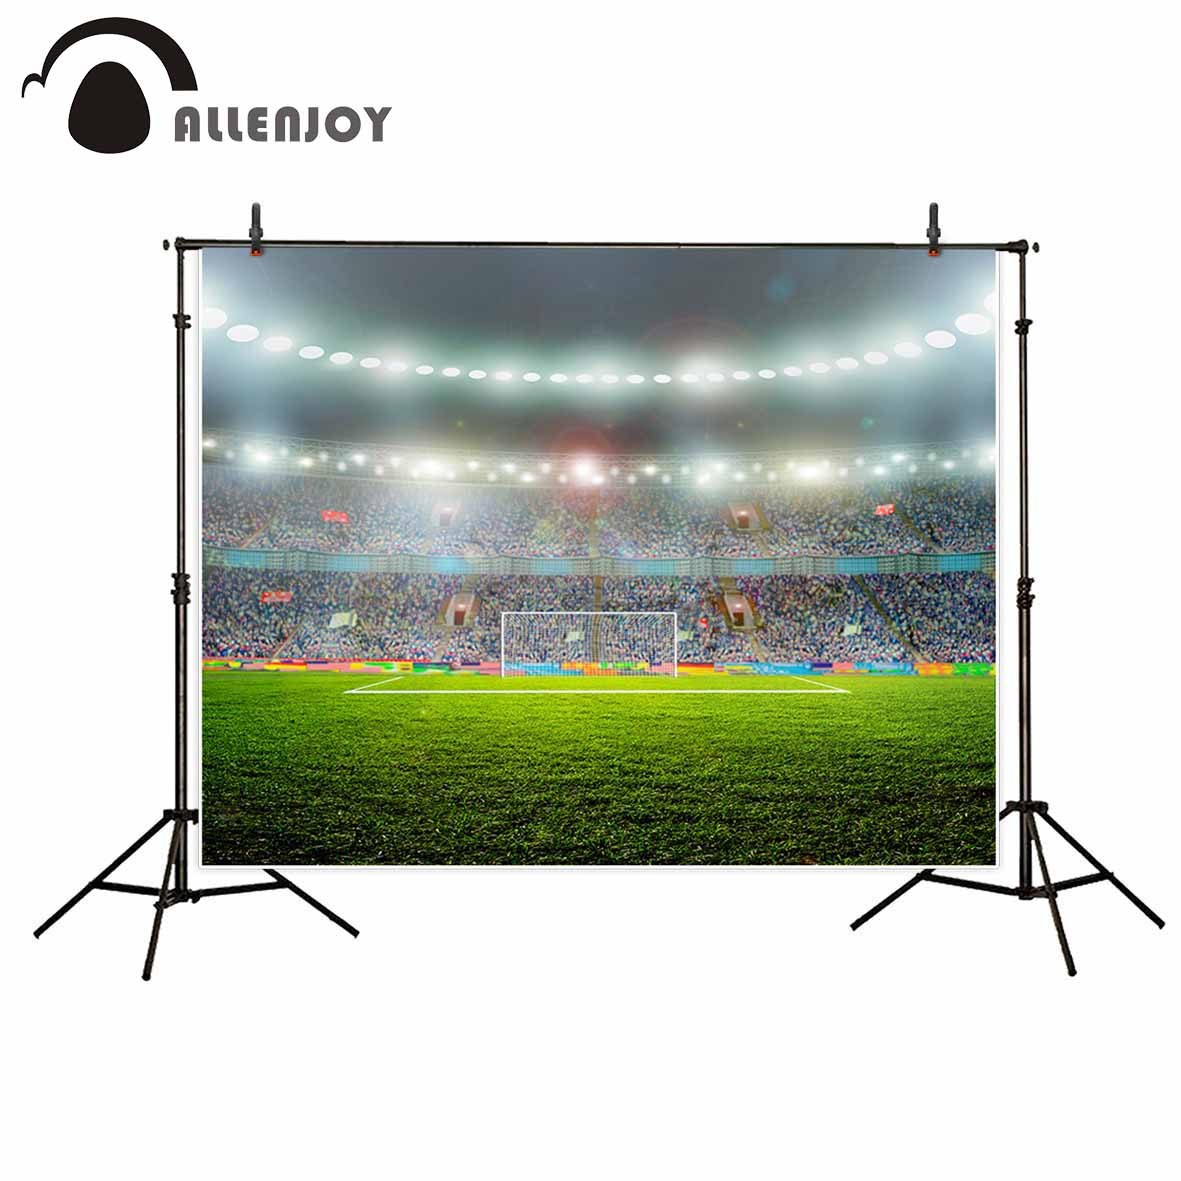 Allenjoy photo background football field Soccer game grass flags goal shiny background for photo for a photo shoot